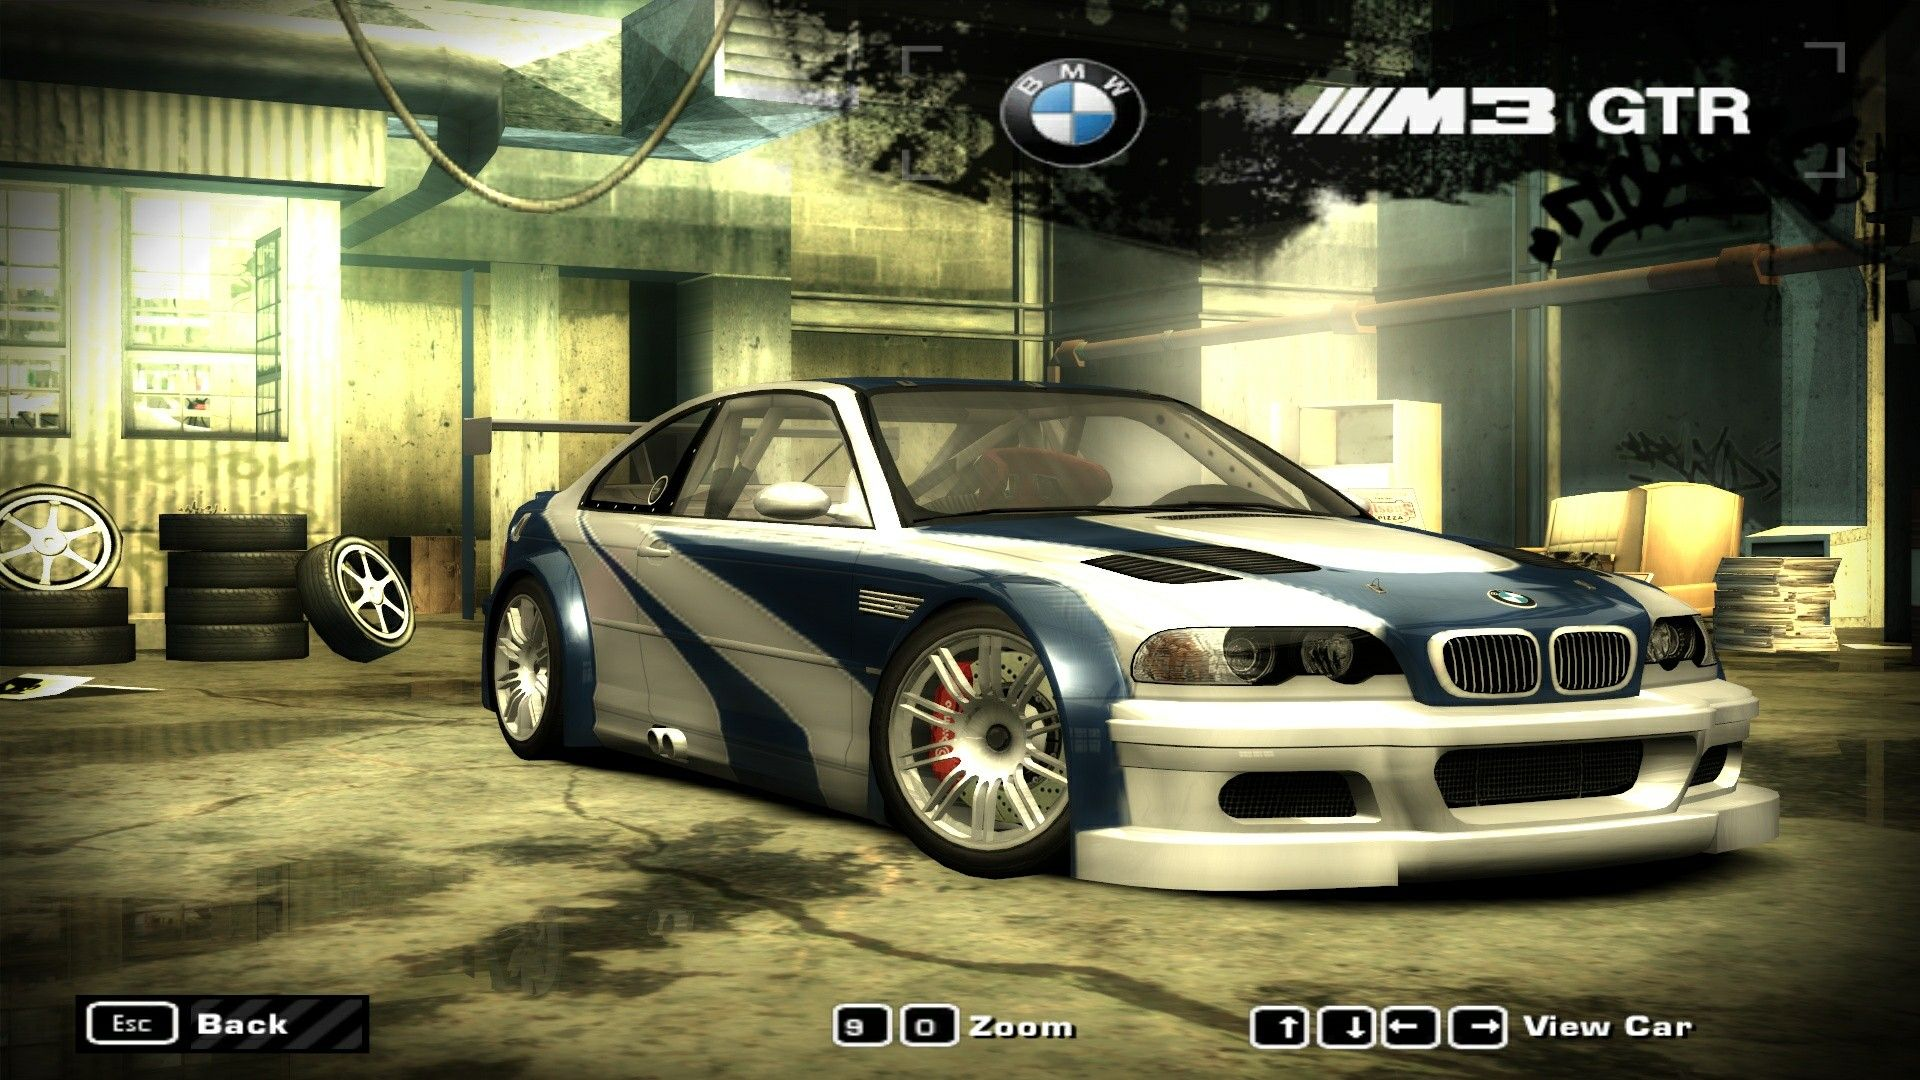 Need For Speed Most Wanted 2005 Bmw M3 Gtr Download Yellowbo